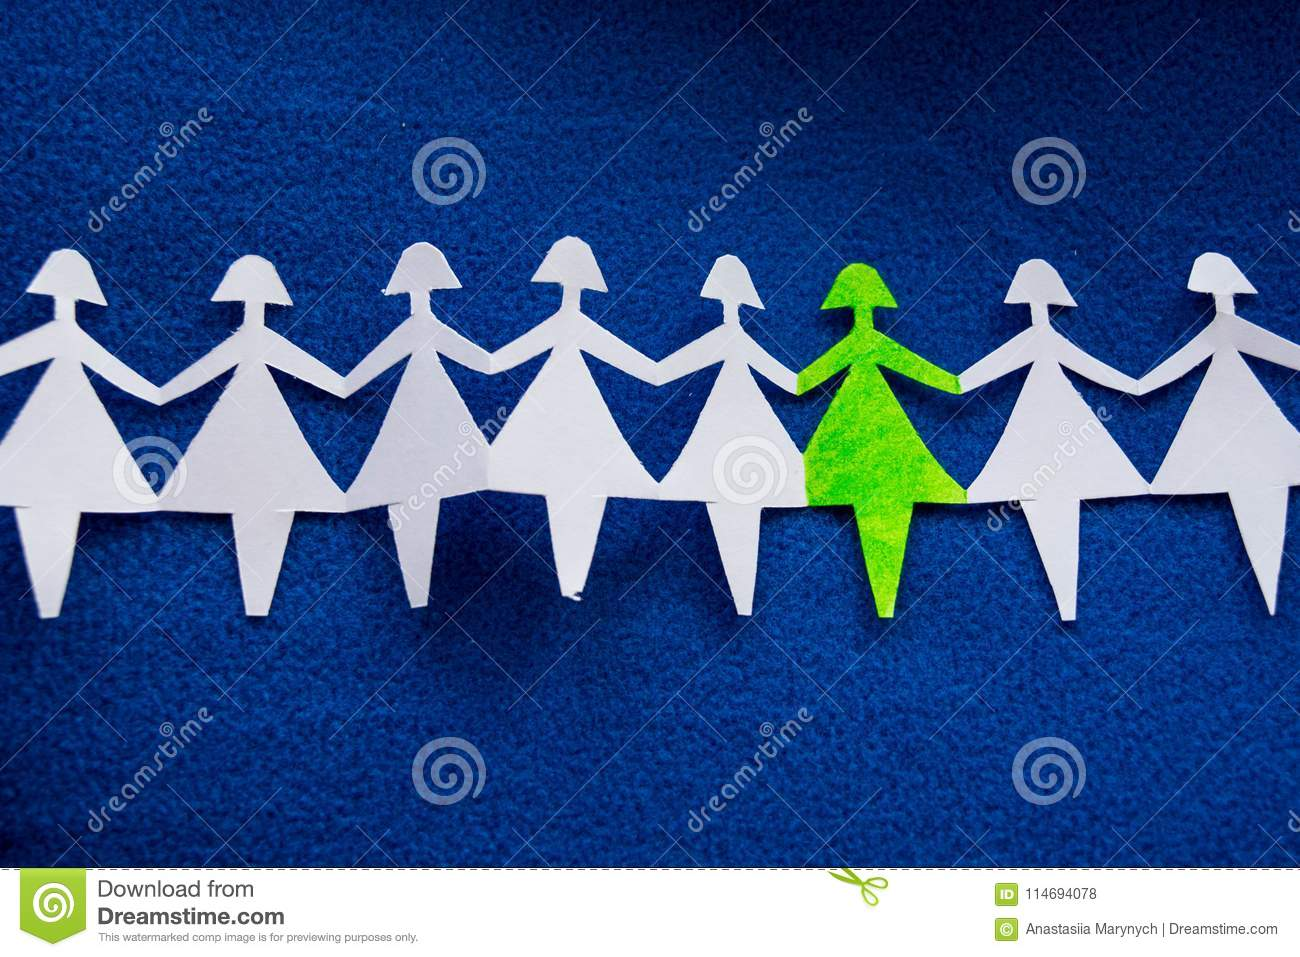 Group of paper women as a concept of togetherness, society etc.